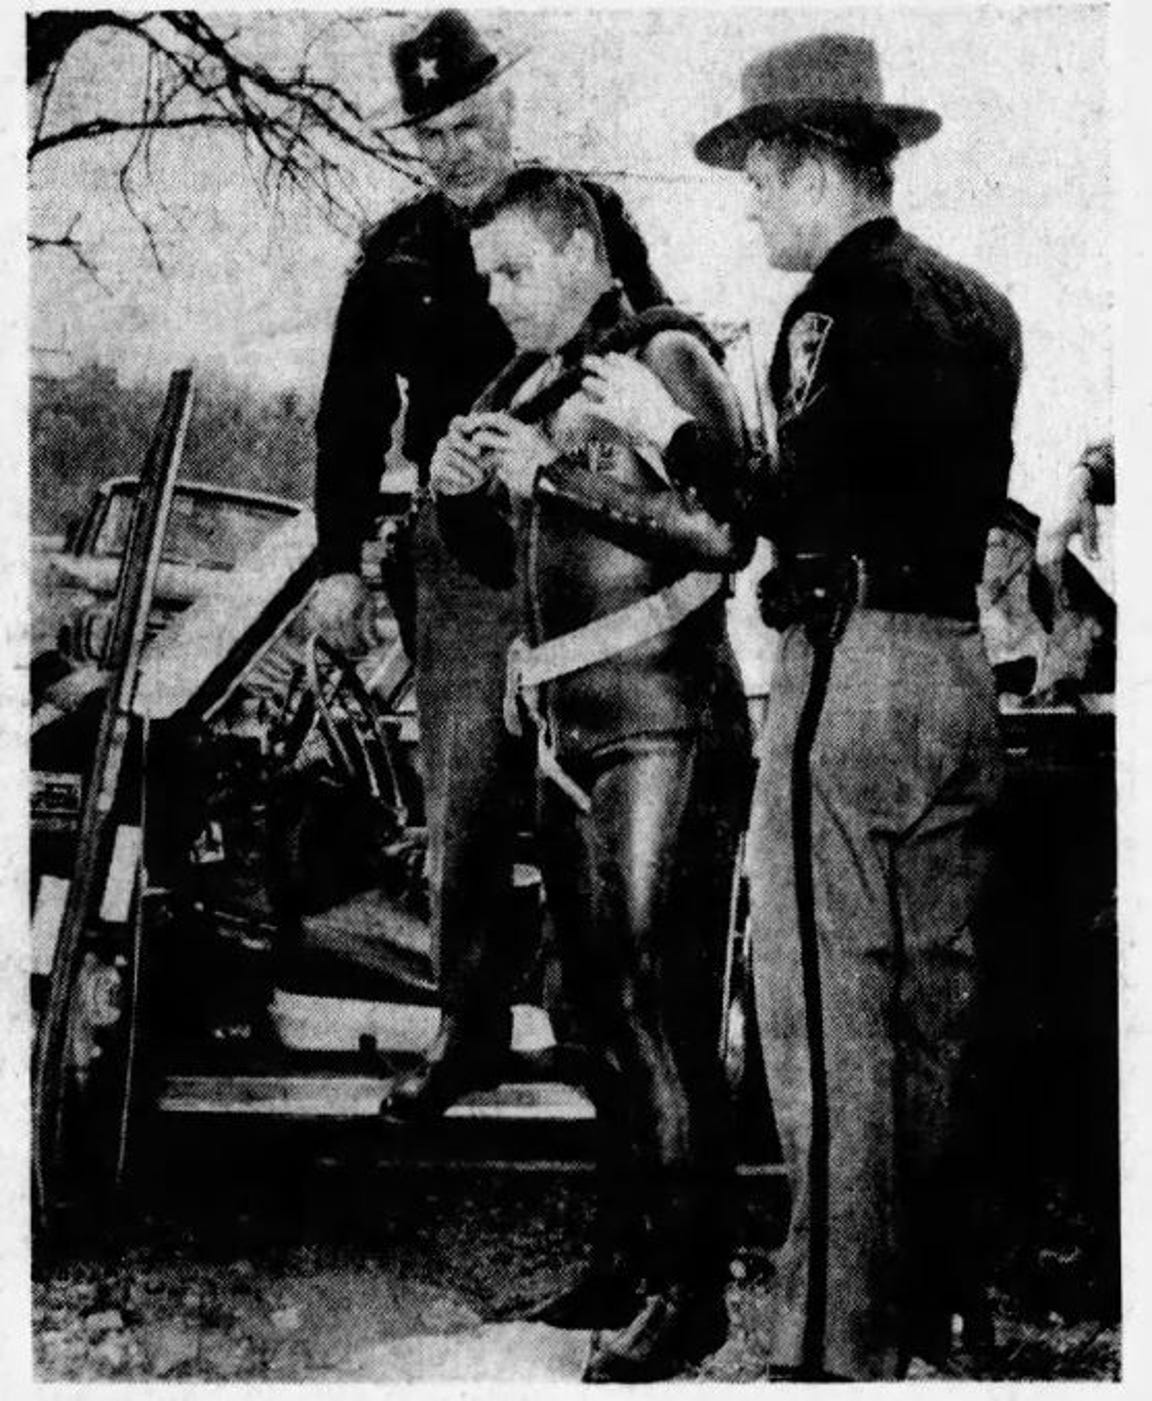 In 1964, Ross County Sheriff's Deputy Doug Ray put his scuba training to use to check out a car partially submerged in Paint Creek. The car, which was stolen, turned out to be empty and intentionally ran into the creek.